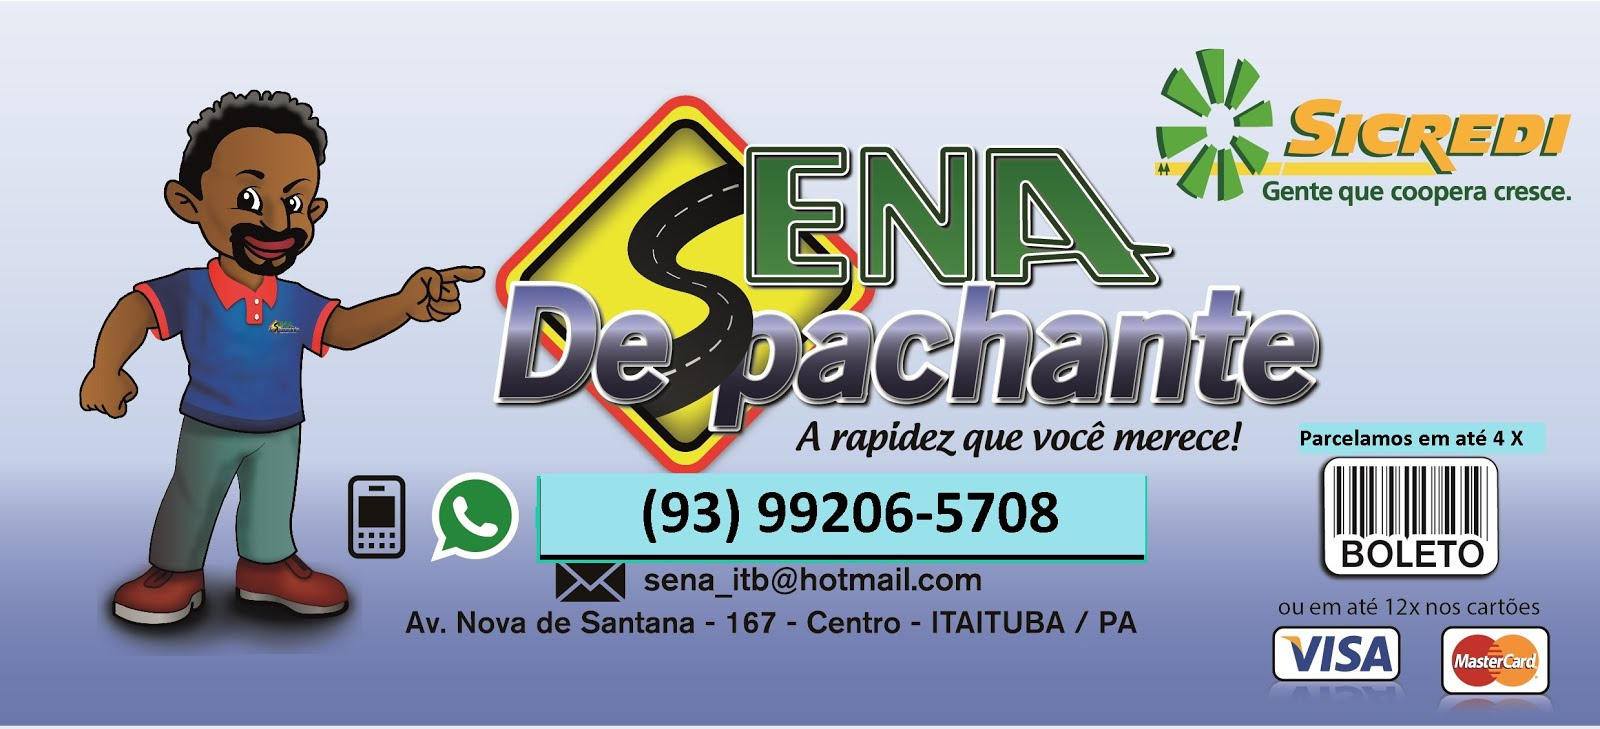 SENA DESPACHANTE